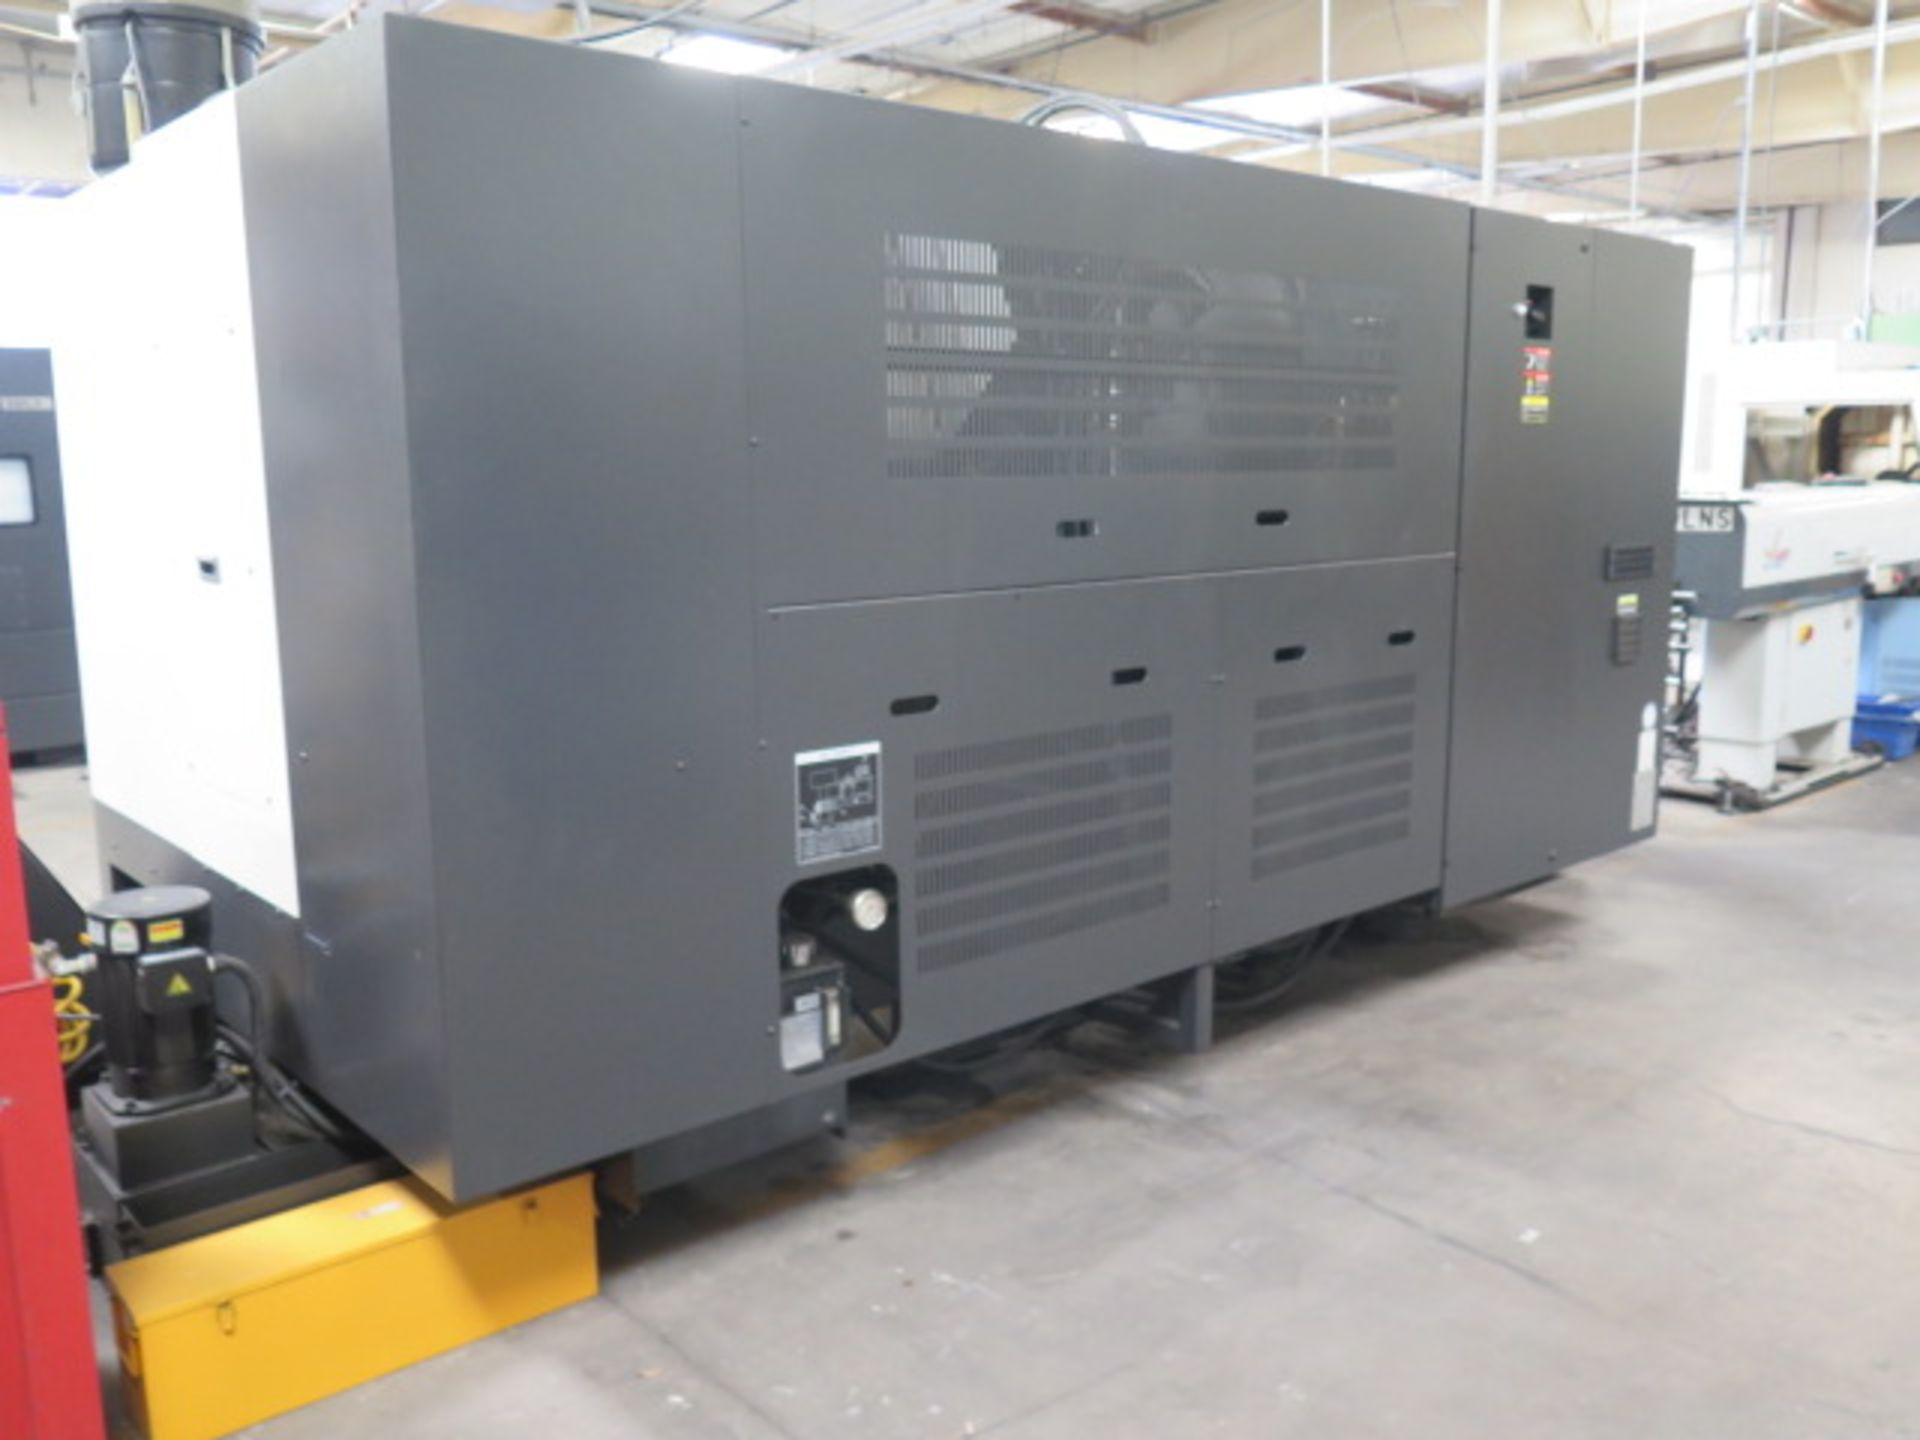 2016 Hyundai WIA L300LA CNC Turning Center s/n G3726-0083 w/ Fanuc i-Series Controls, SOLD AS IS - Image 17 of 20